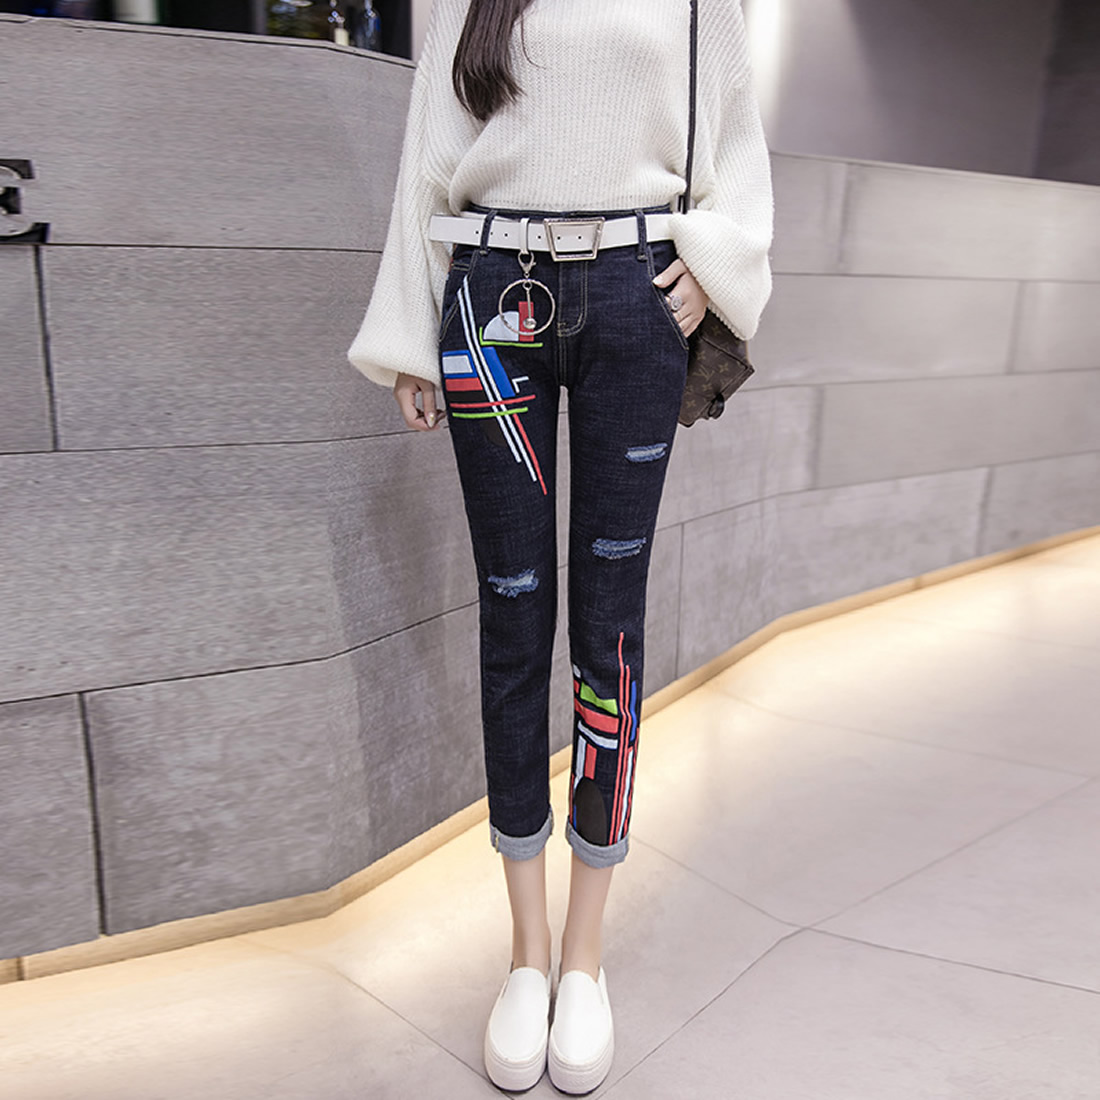 Skinny Jeans Female Ripped Jeans For Women Pencil Pants Summer Blue Denim Hole Pants Ladies Pantalones Mujer Jeans summer boyfriend jeans for women hole ripped white lace flowers denim pants low waist mujer vintage skinny stretch jeans female